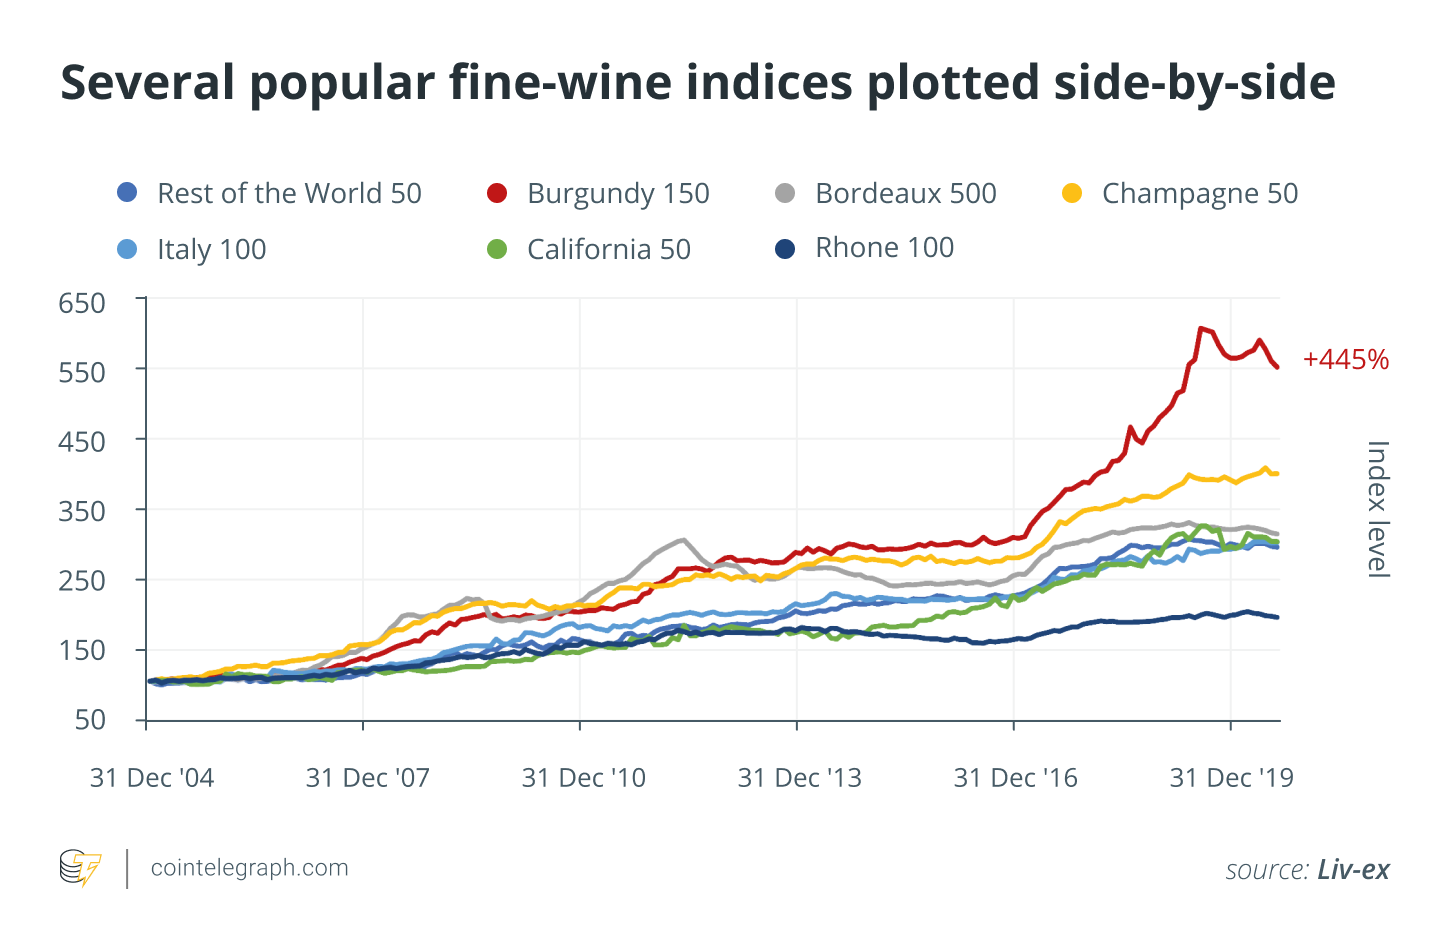 Several popular wine indices are shown side by side